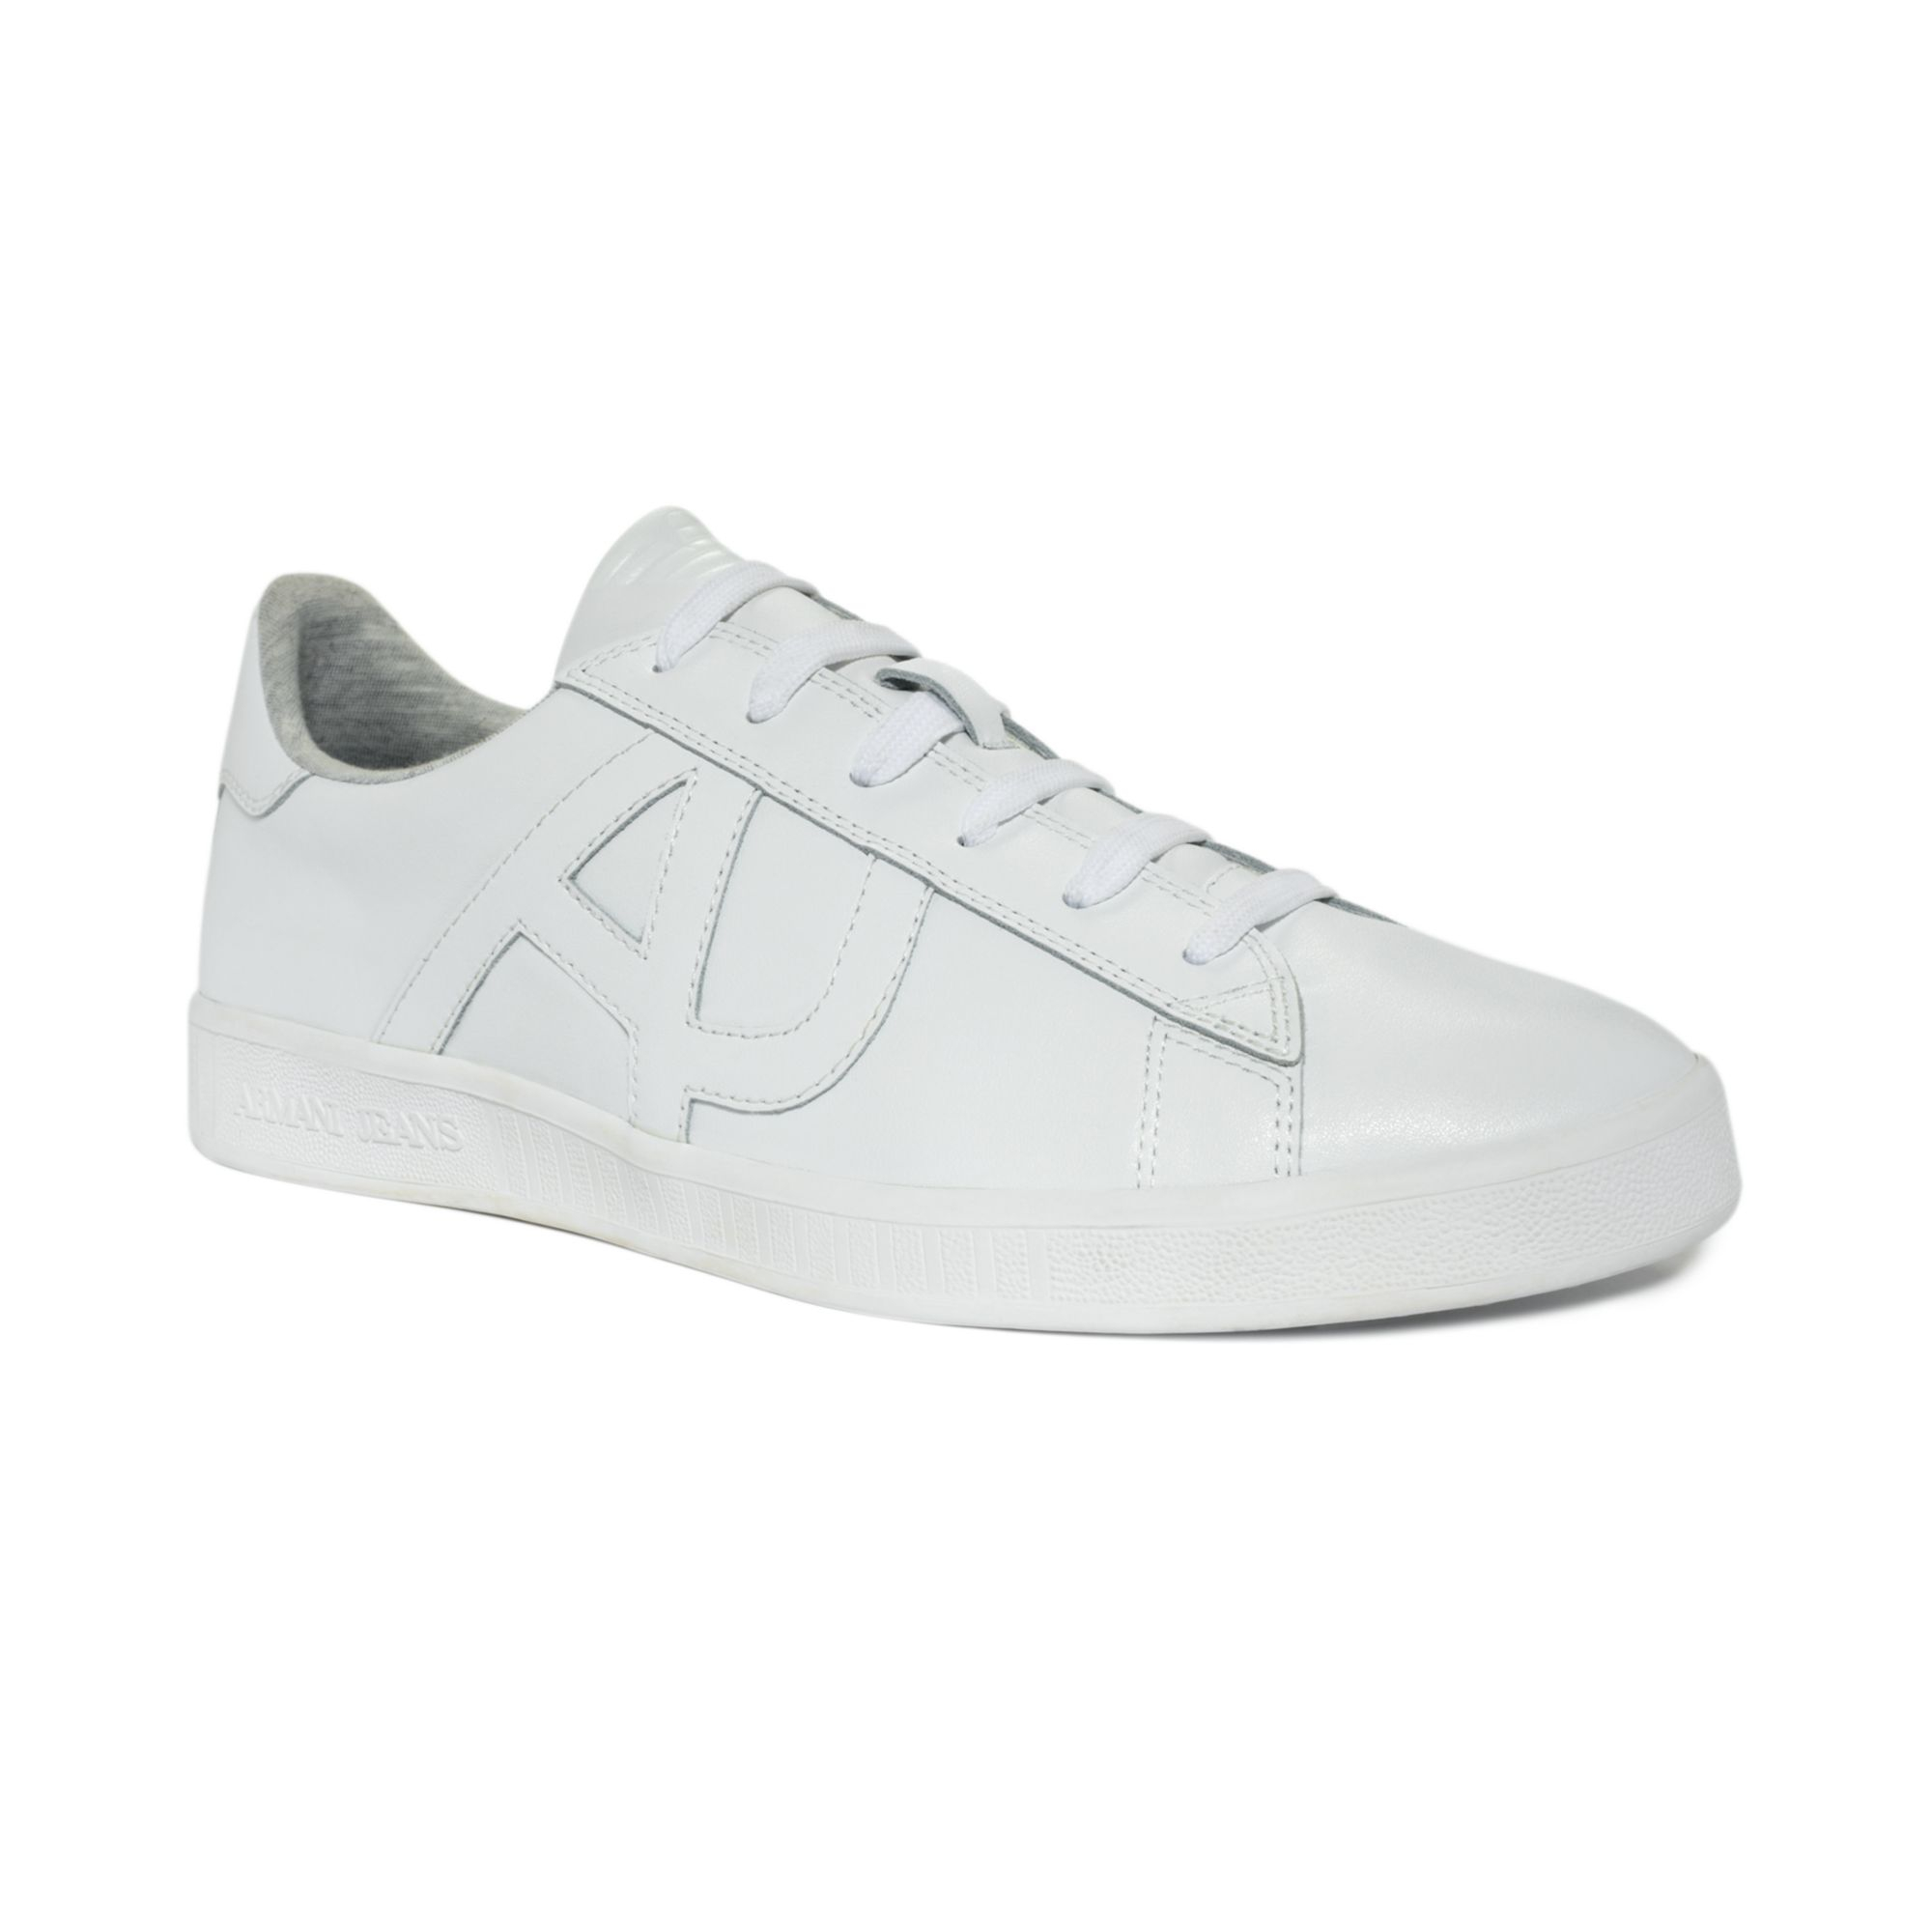 armani jeans white shoes, OFF 77%,Buy!